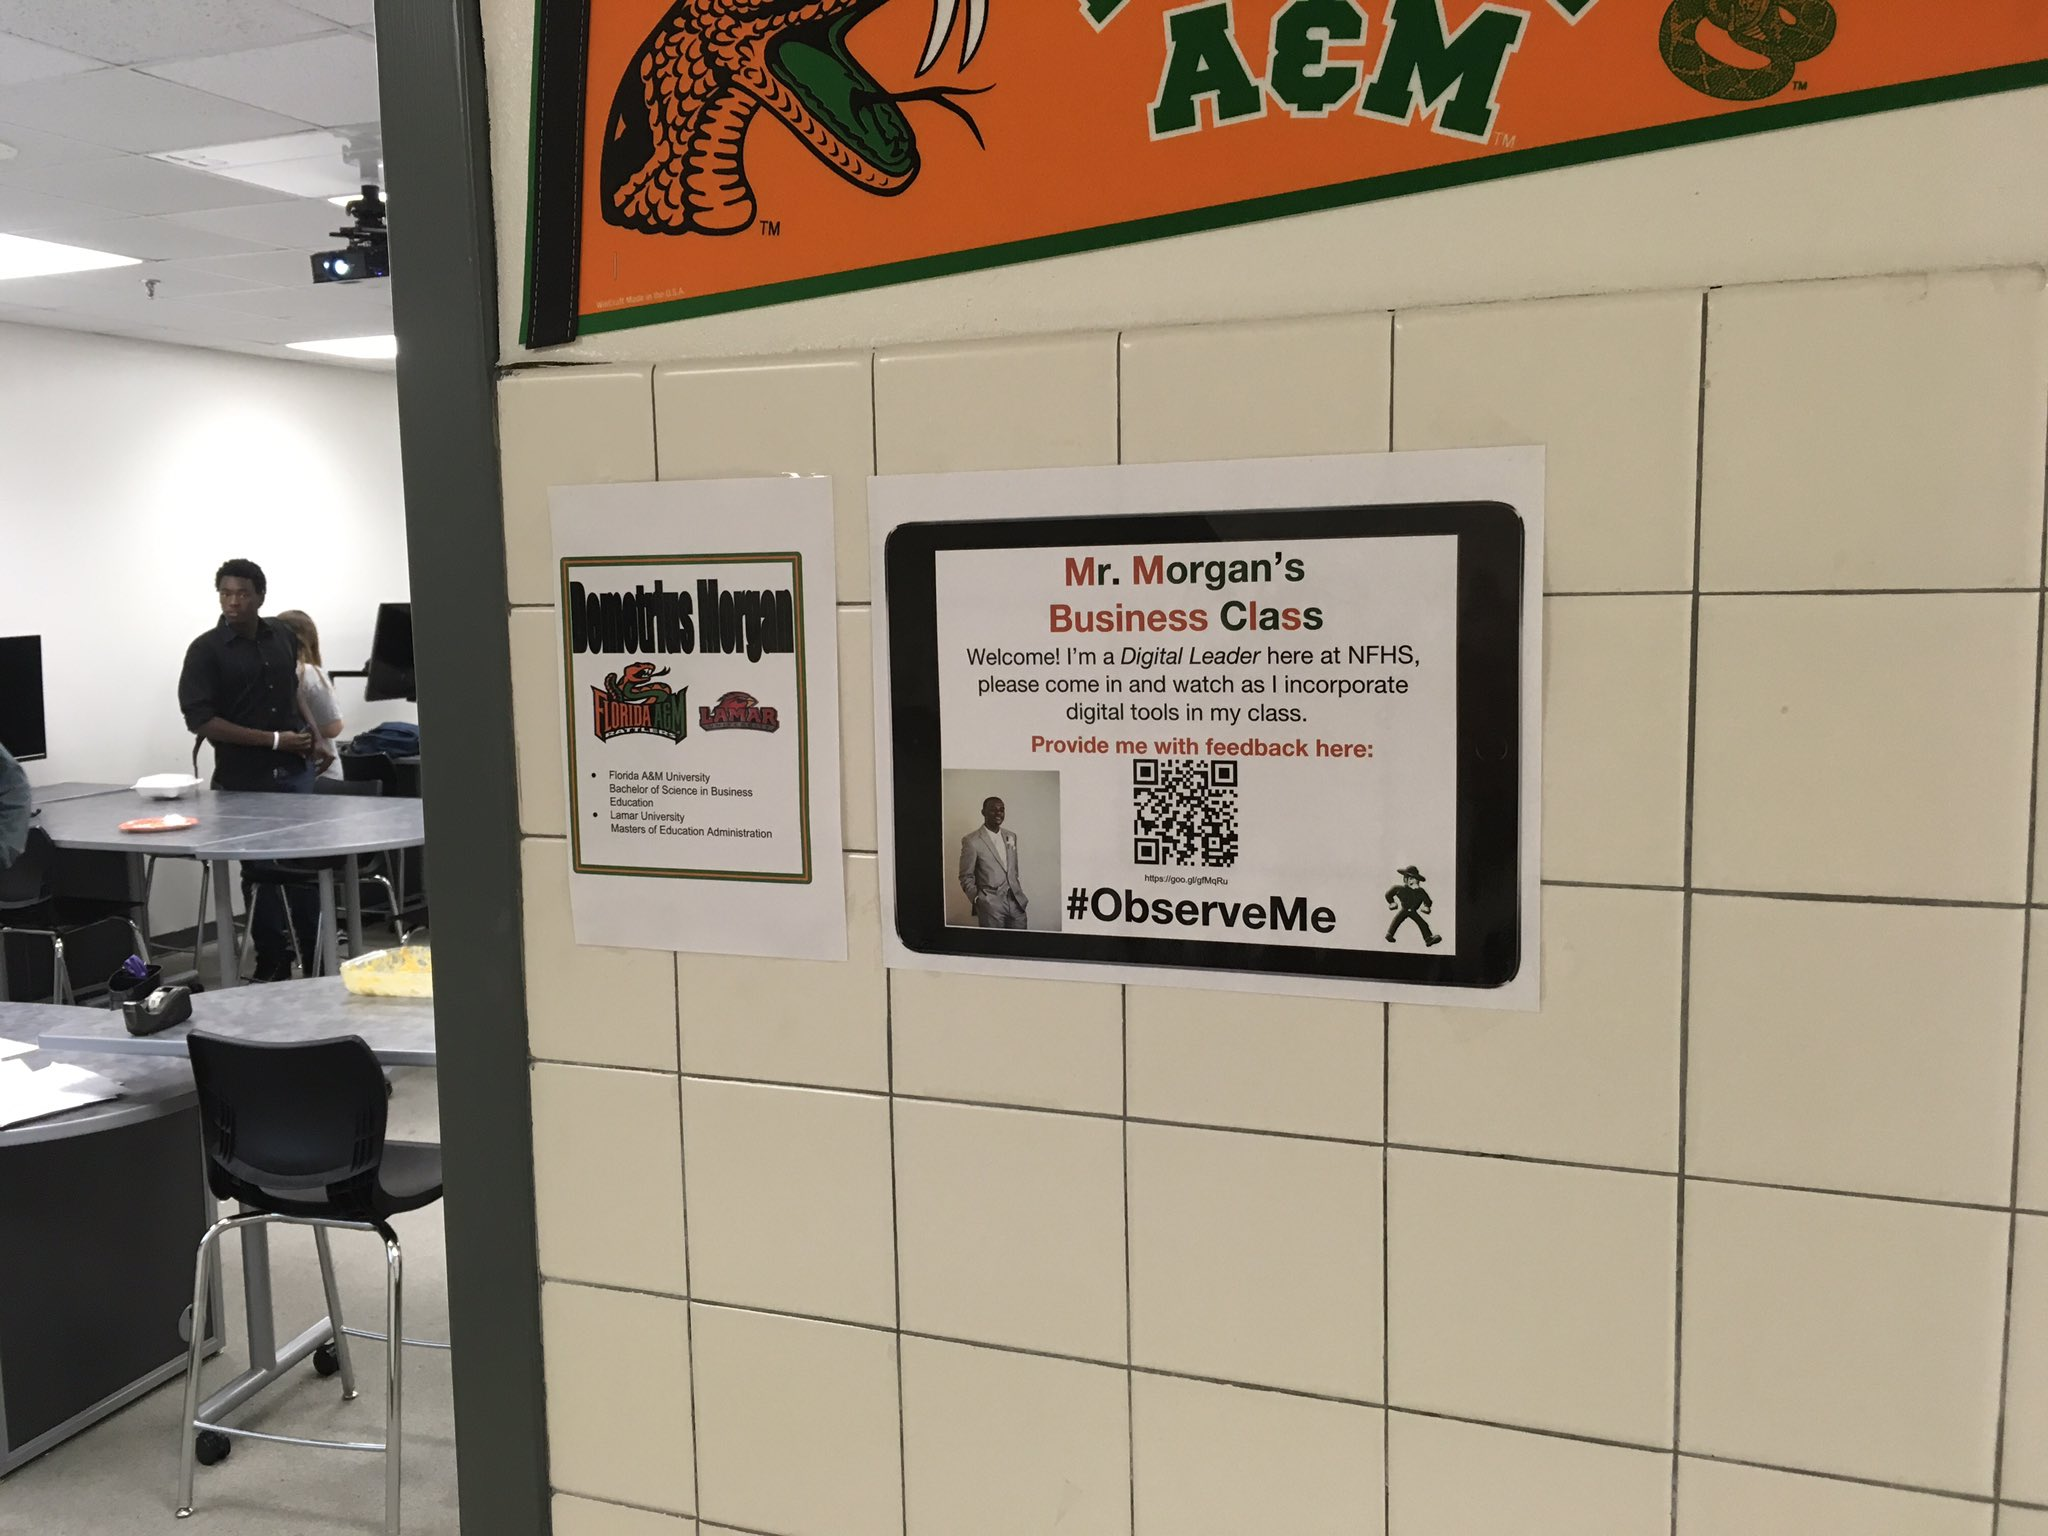 Teachers at @NFHS_Rangers are joining the #ObserveMe movement. Check out @Dmorgan357 sign!  #gisdready #nfhsready https://t.co/SNsvz3JnX2